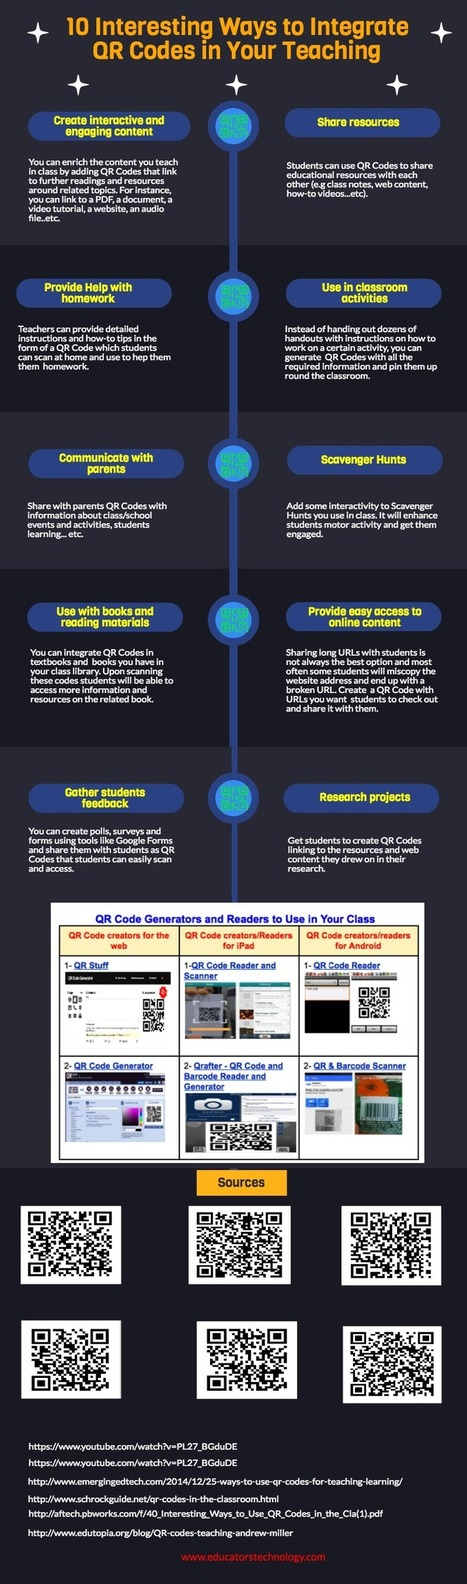 10 Interesting Ways to Integrate QR Codes in Your Teaching (Infographic) ~ Educational Technology and Mobile Learning | Informatics Technology in Education | Scoop.it